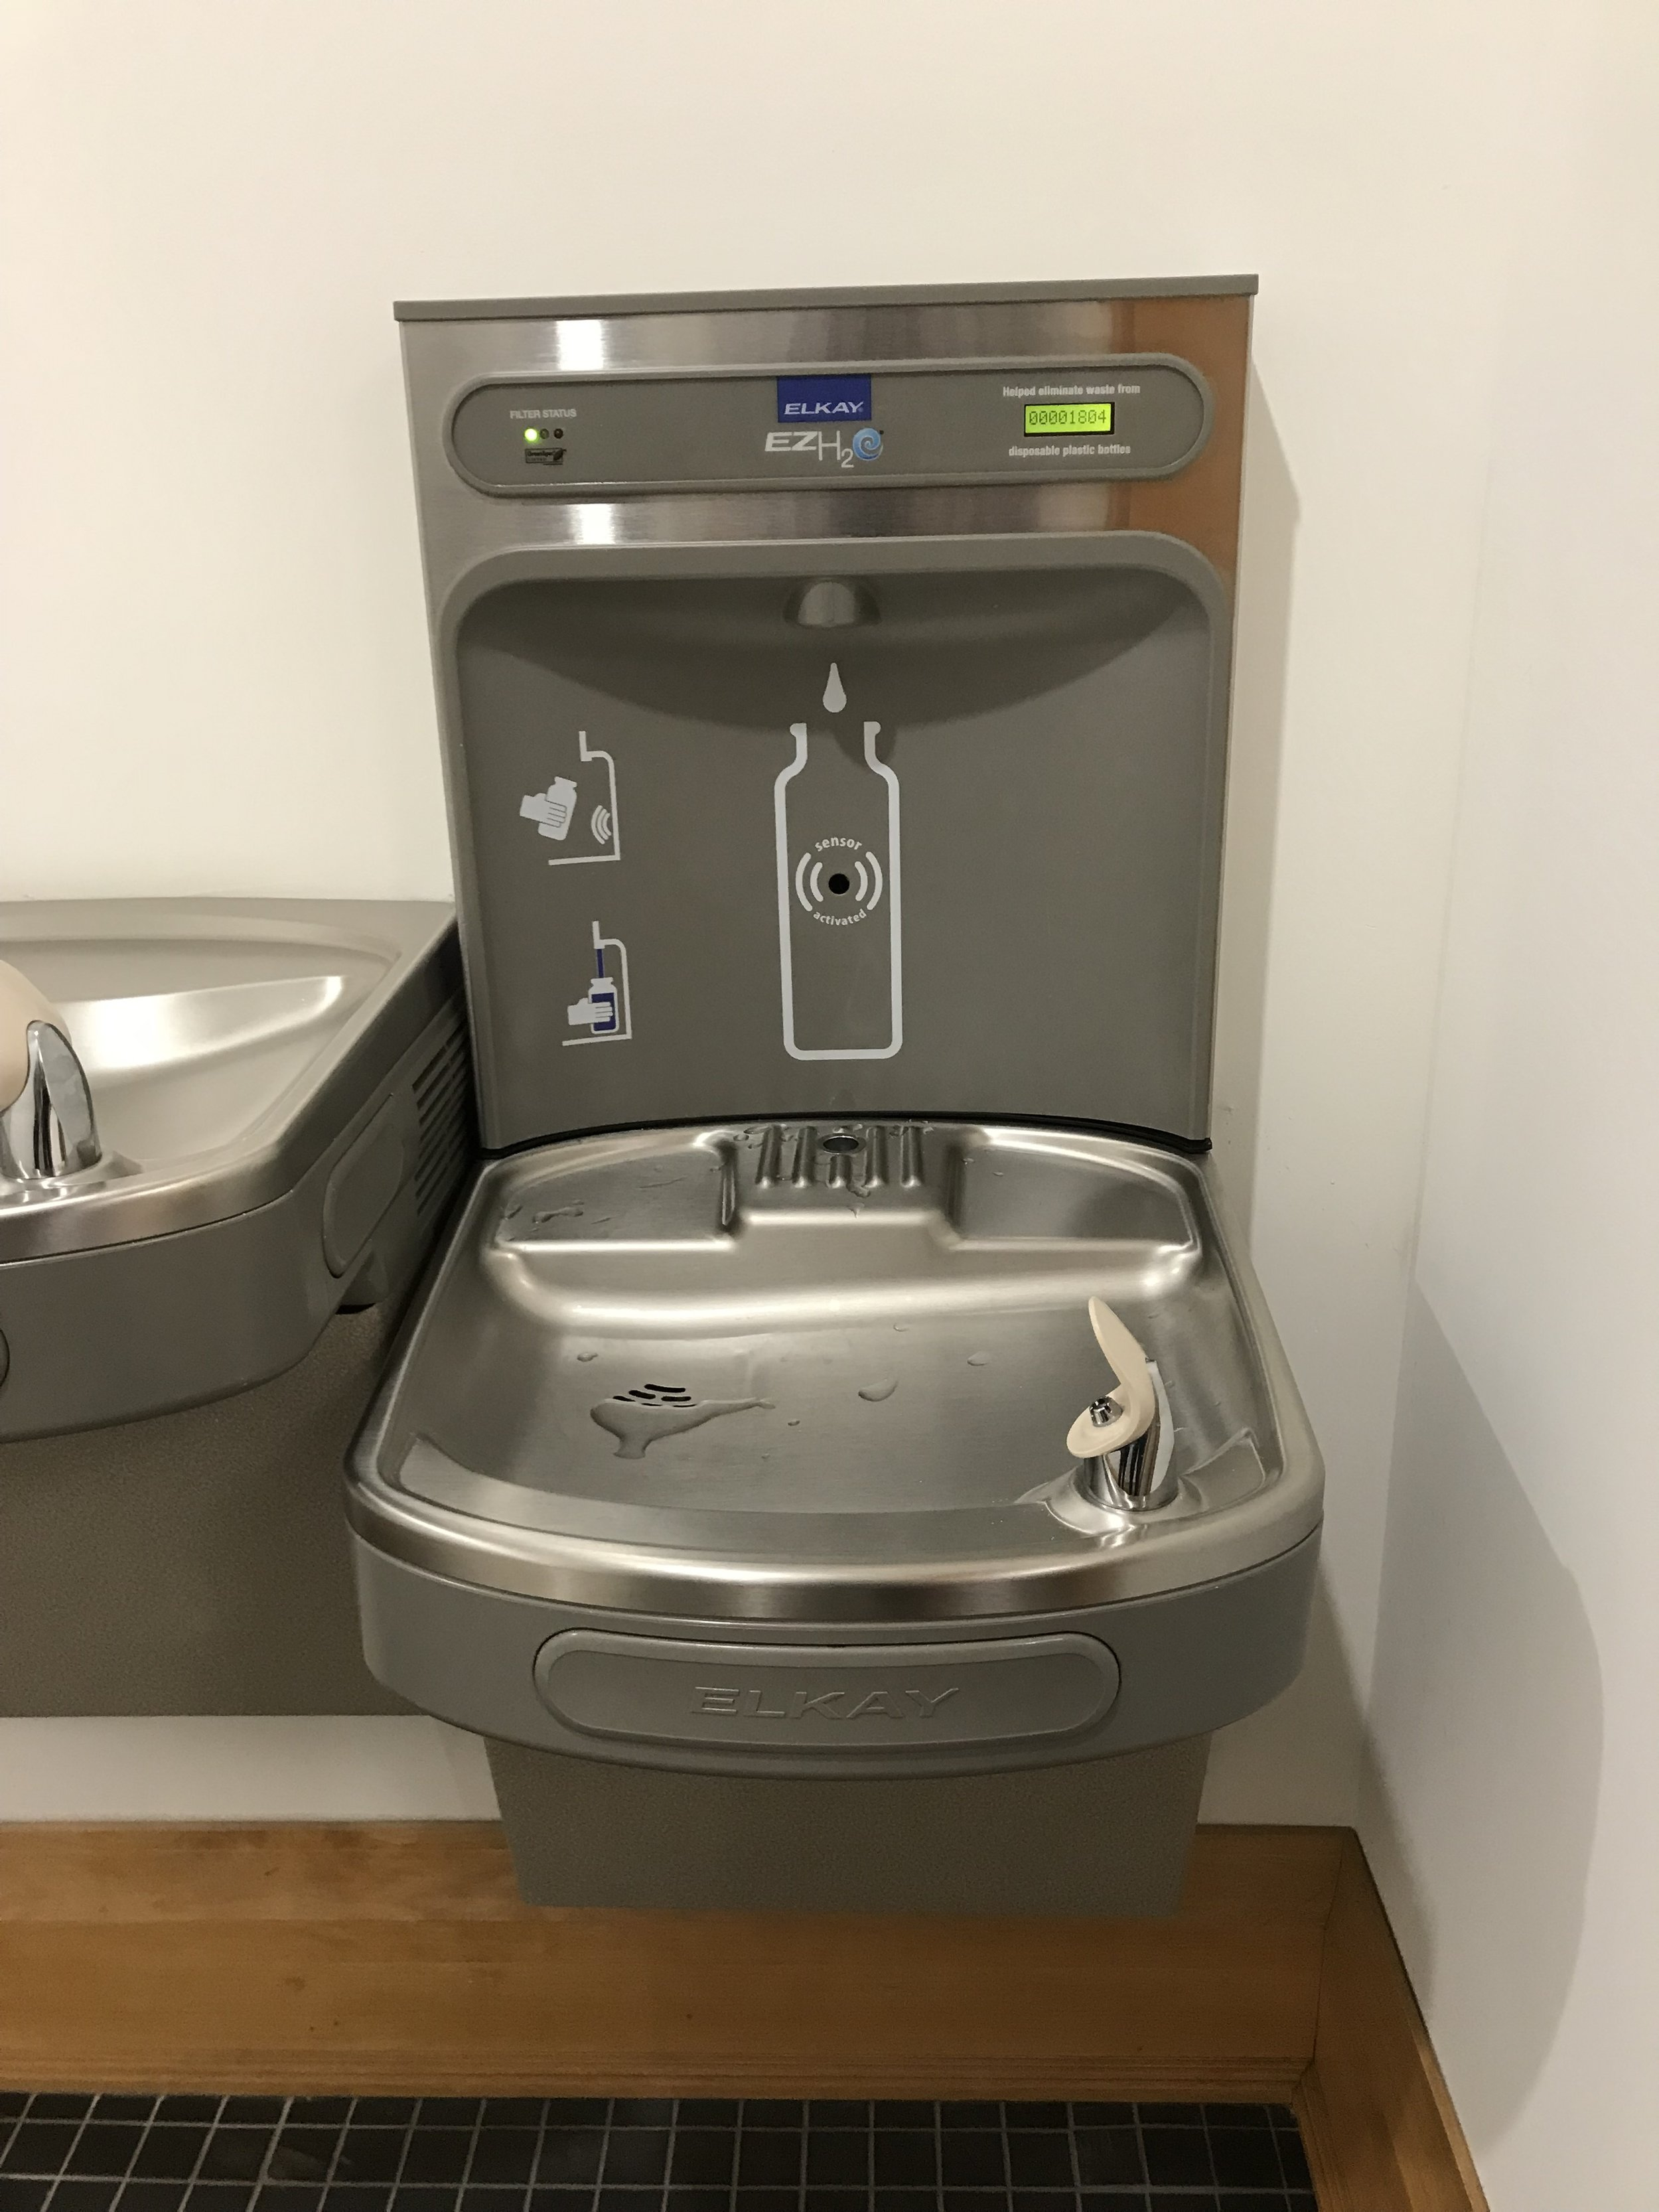 - Ocean Hour is making a map of water bottle filling stations in the Pensacola area. Please send locations to volunteer@oceanhourfl.com Example: Pensacola Airport, 2430 Airport Blvd, Pensacola, FL 32504. Located between Gate 5 and women's restroom on the concourse